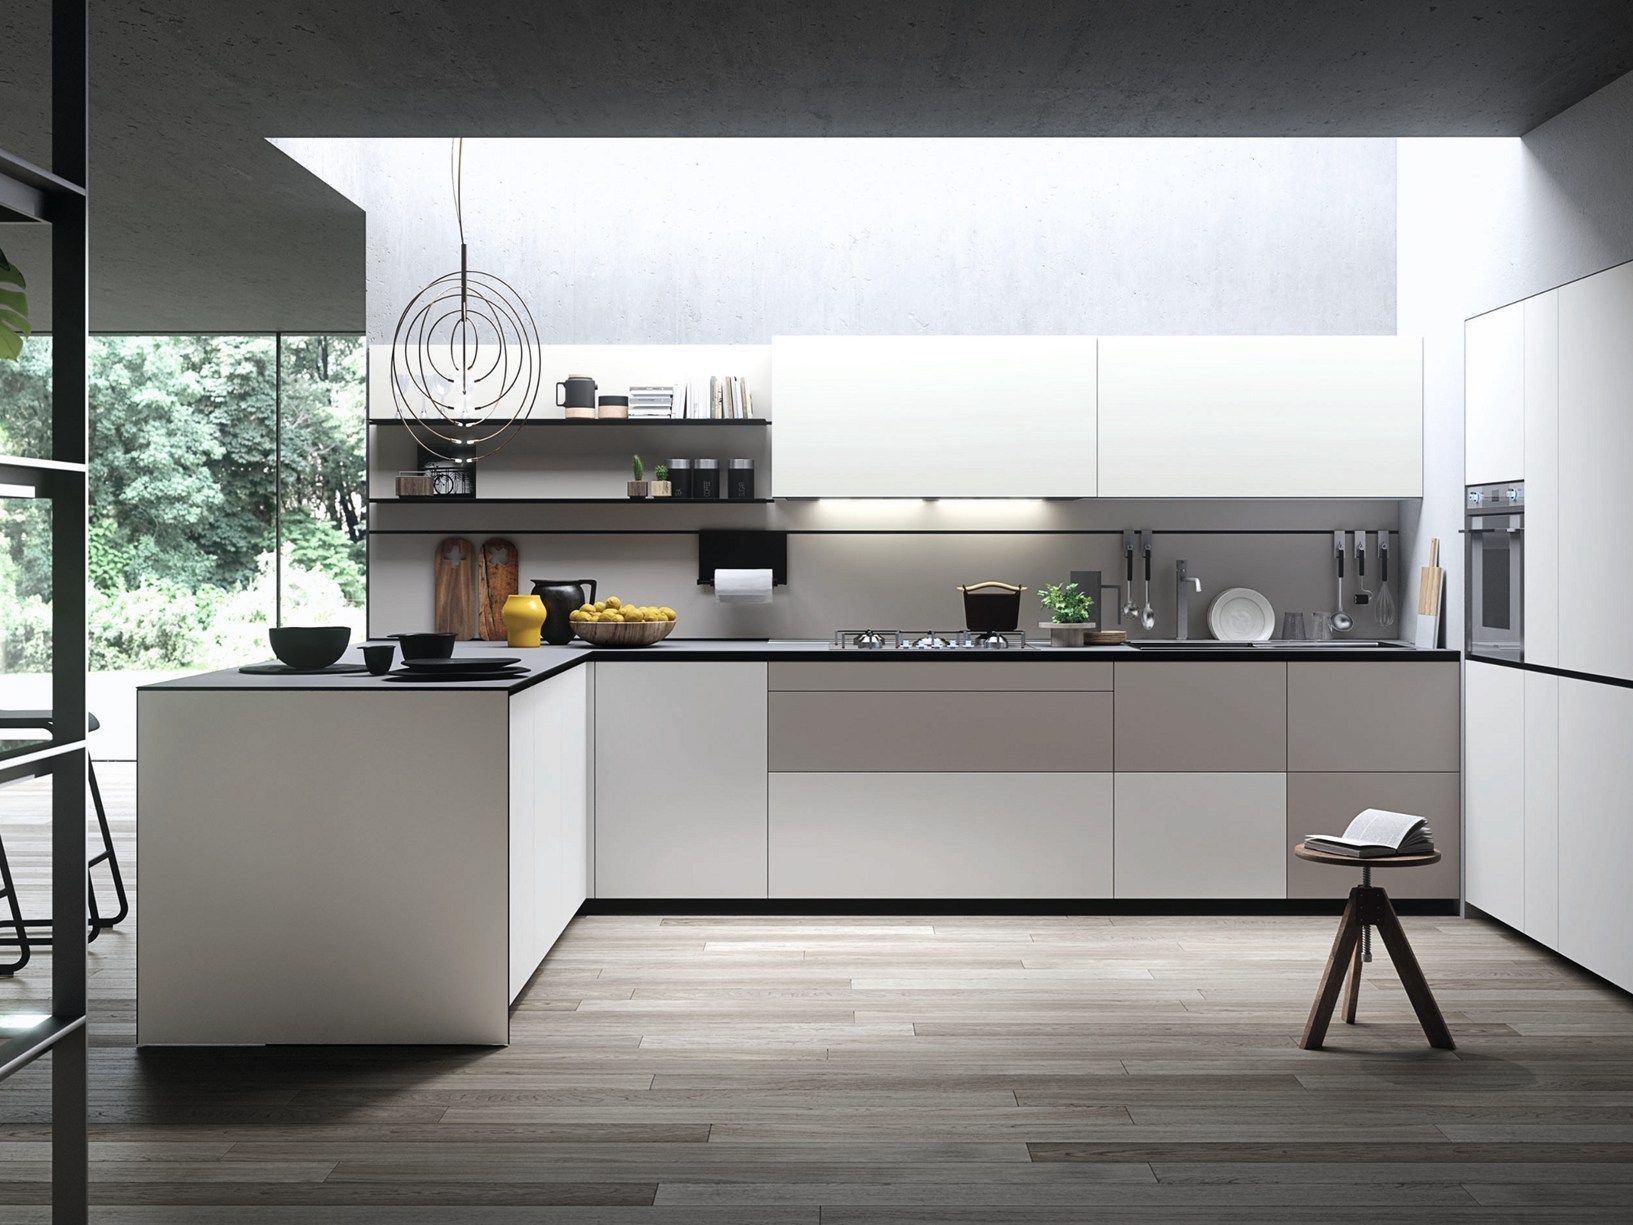 Valcucine at LivingKitchen